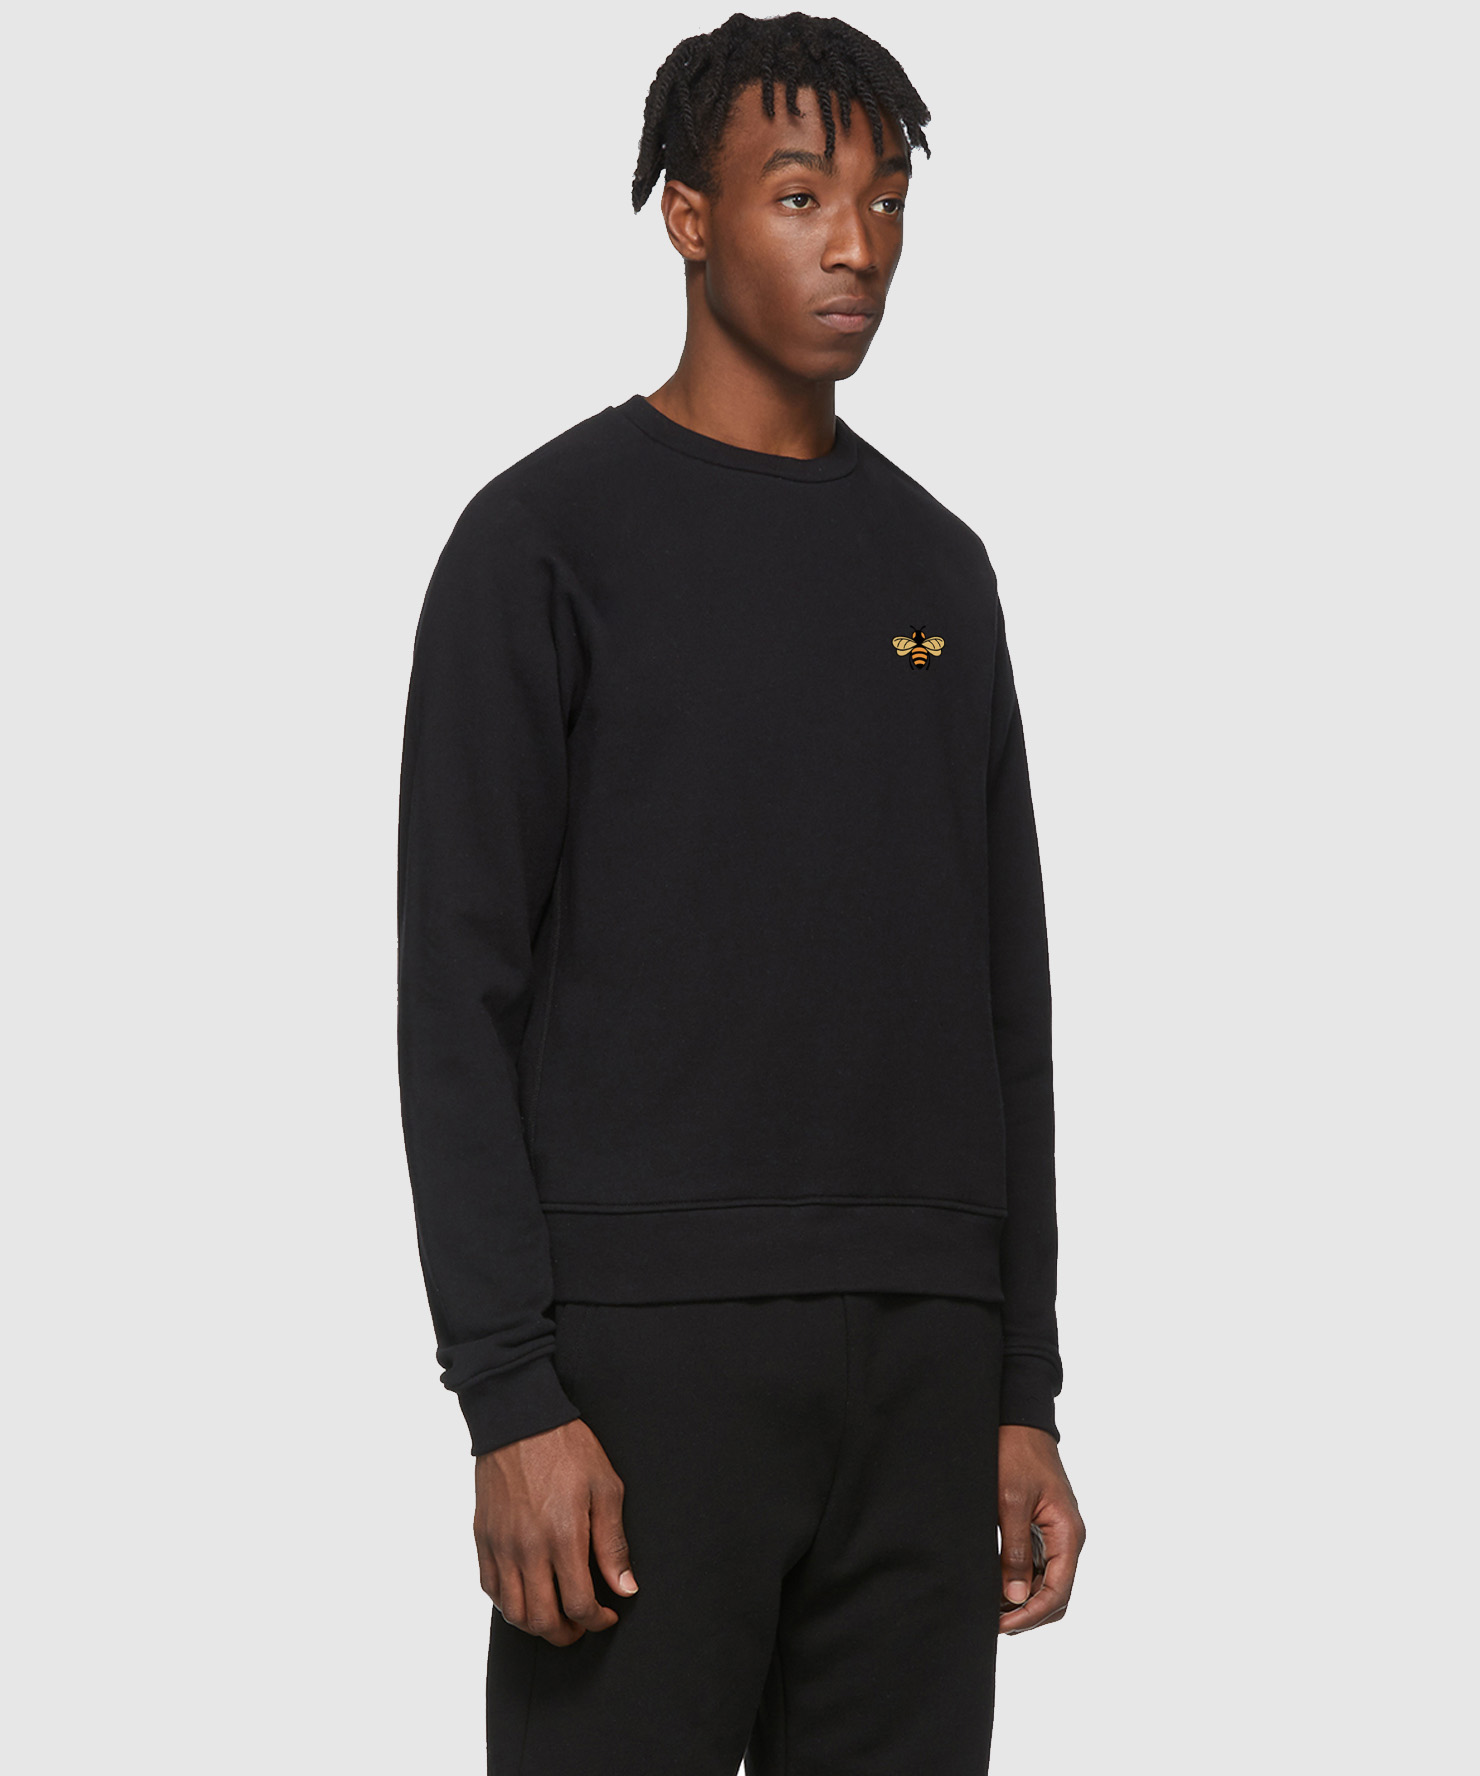 Crew Sweatshirt Bee 2 - Checkout Page